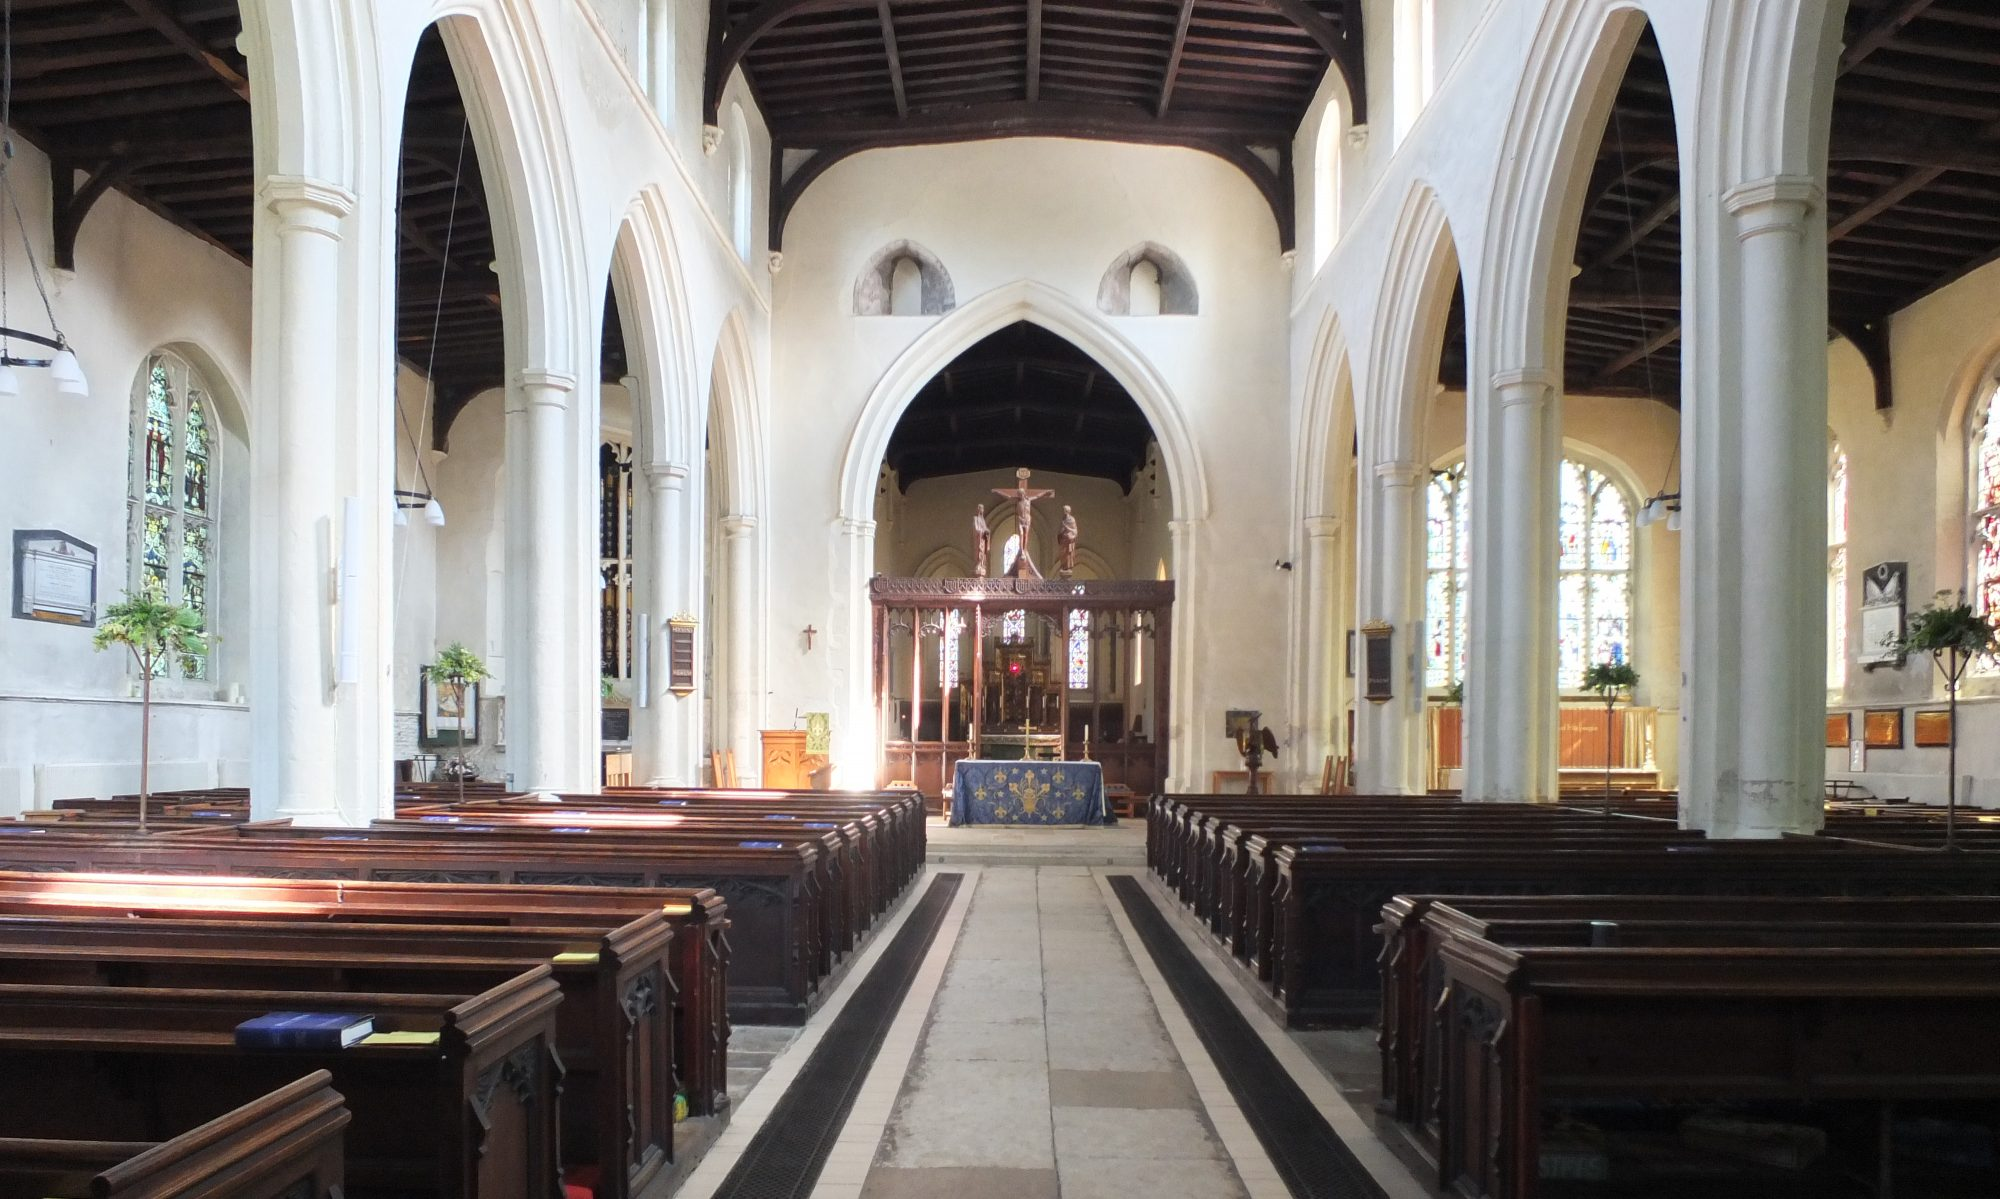 Welcome to the Parish Church of St.Mary the Virgin Godmanchester